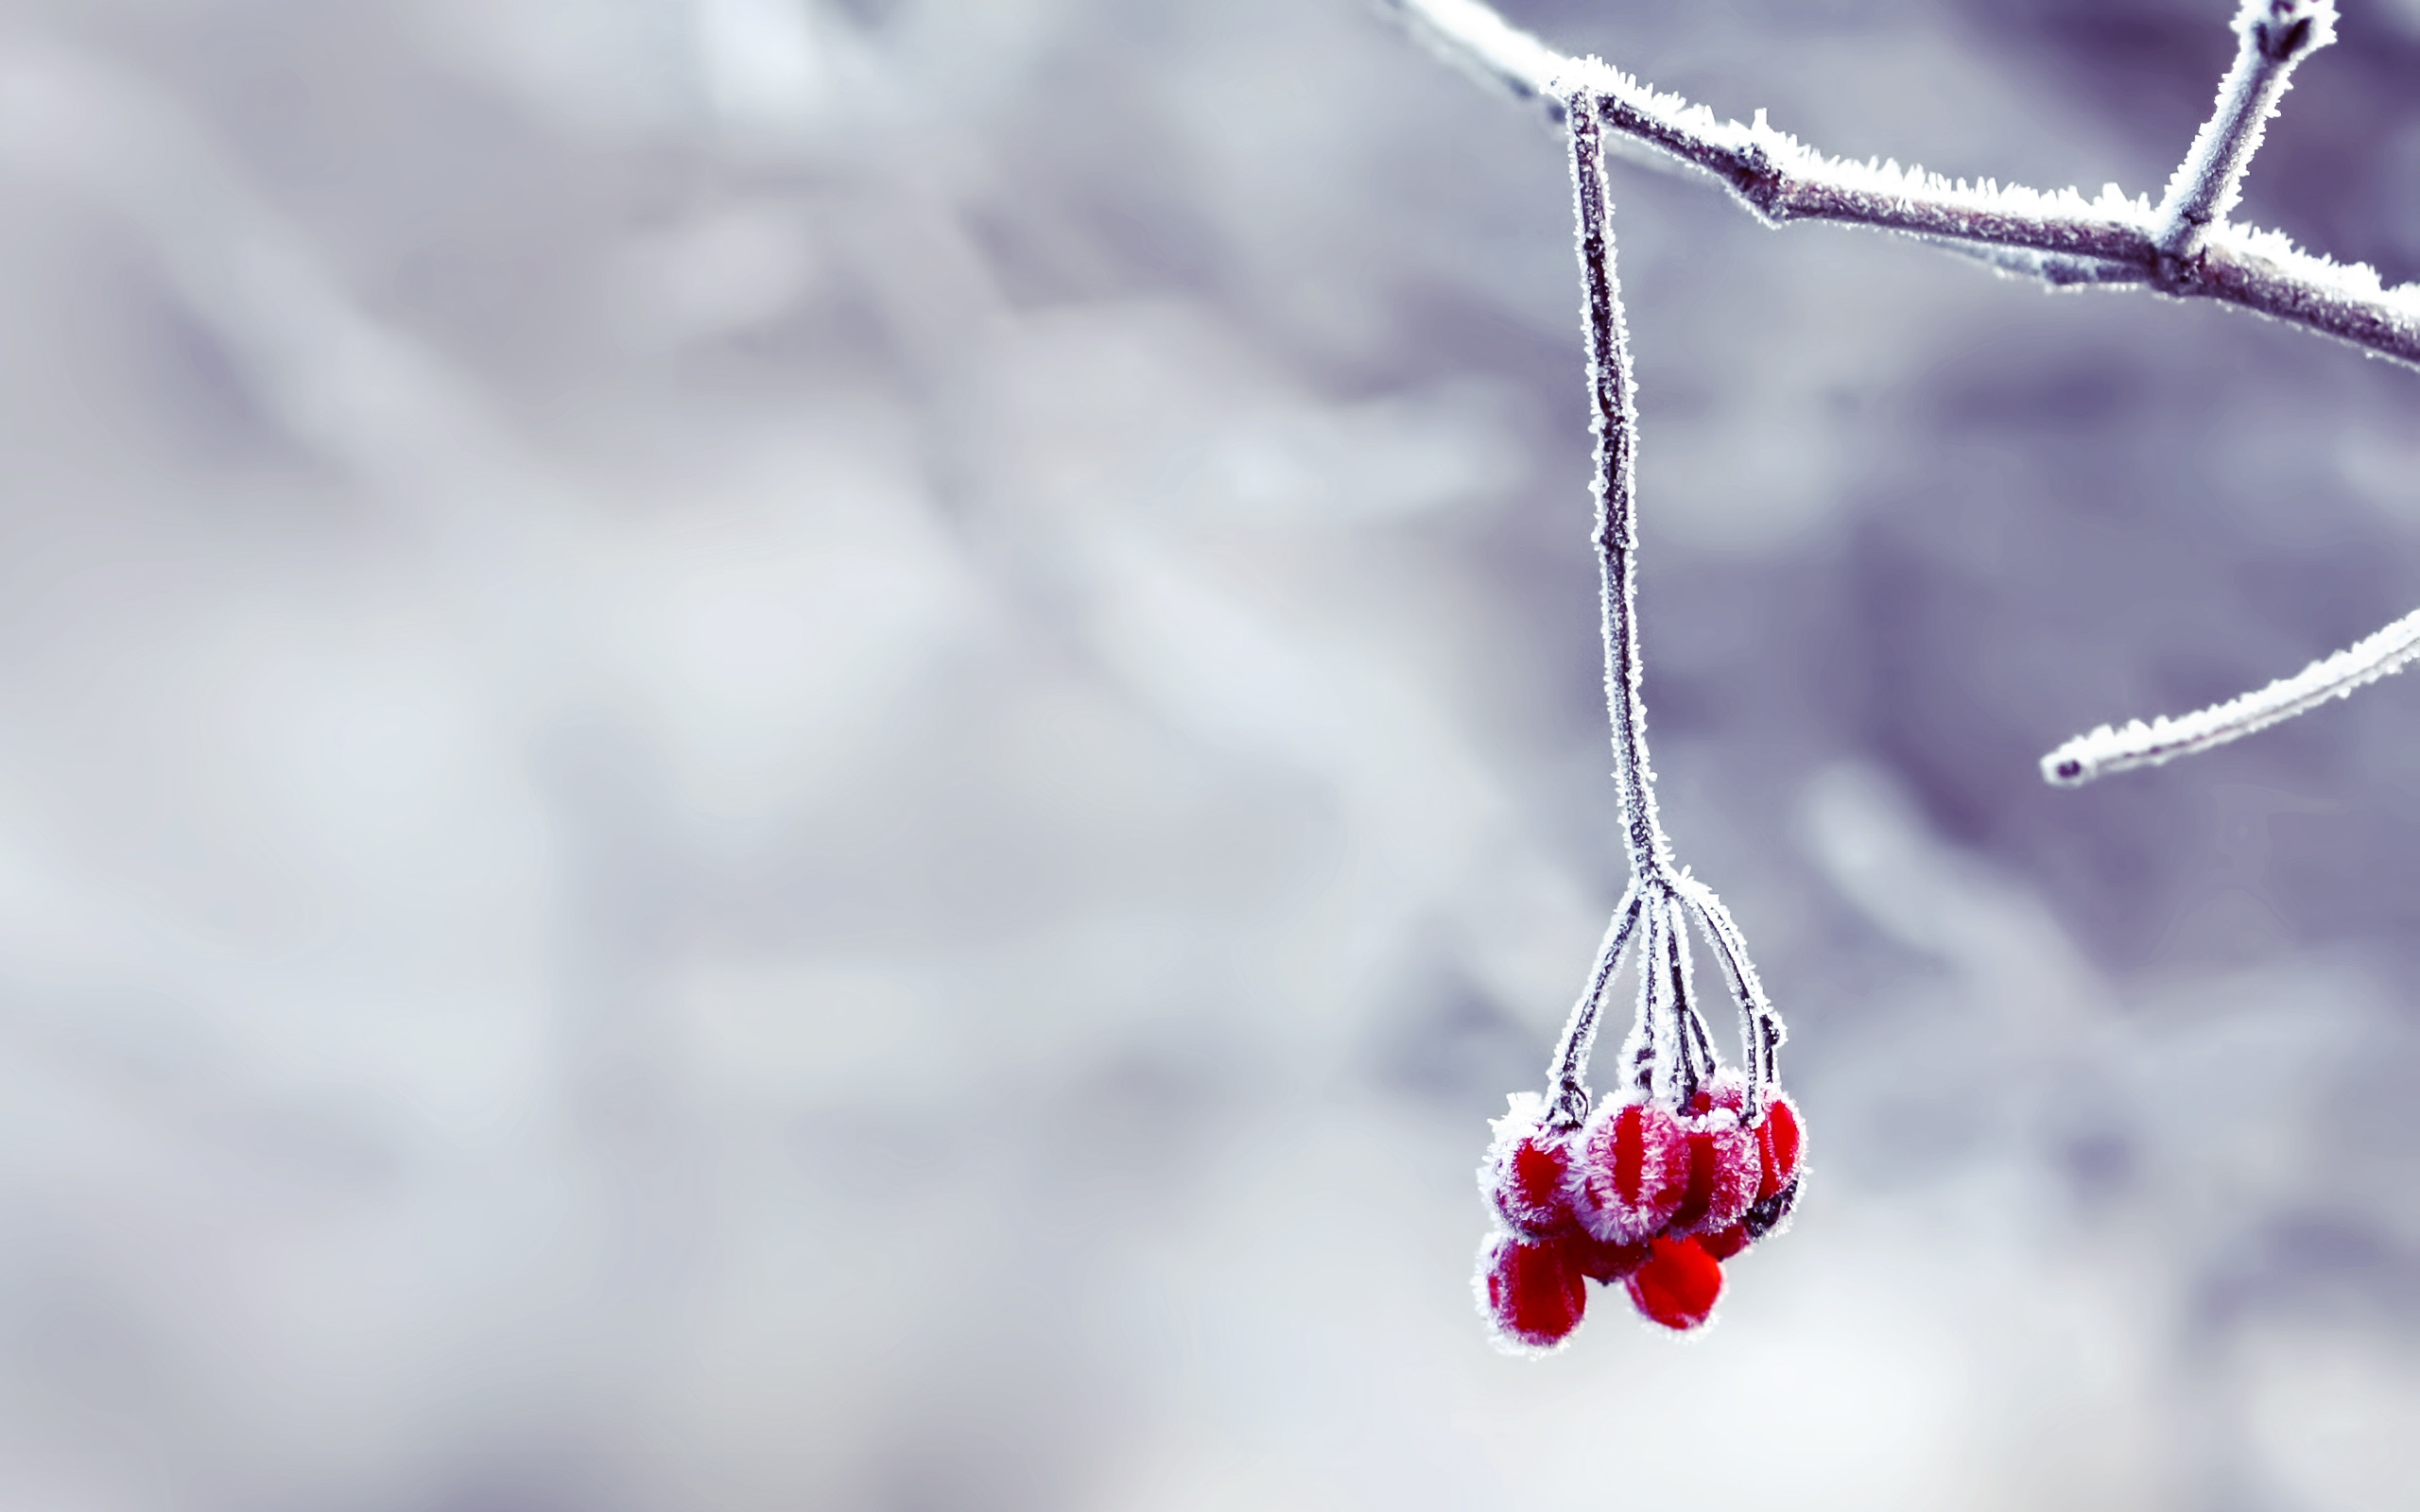 2560x1600 snow wallpaper berries